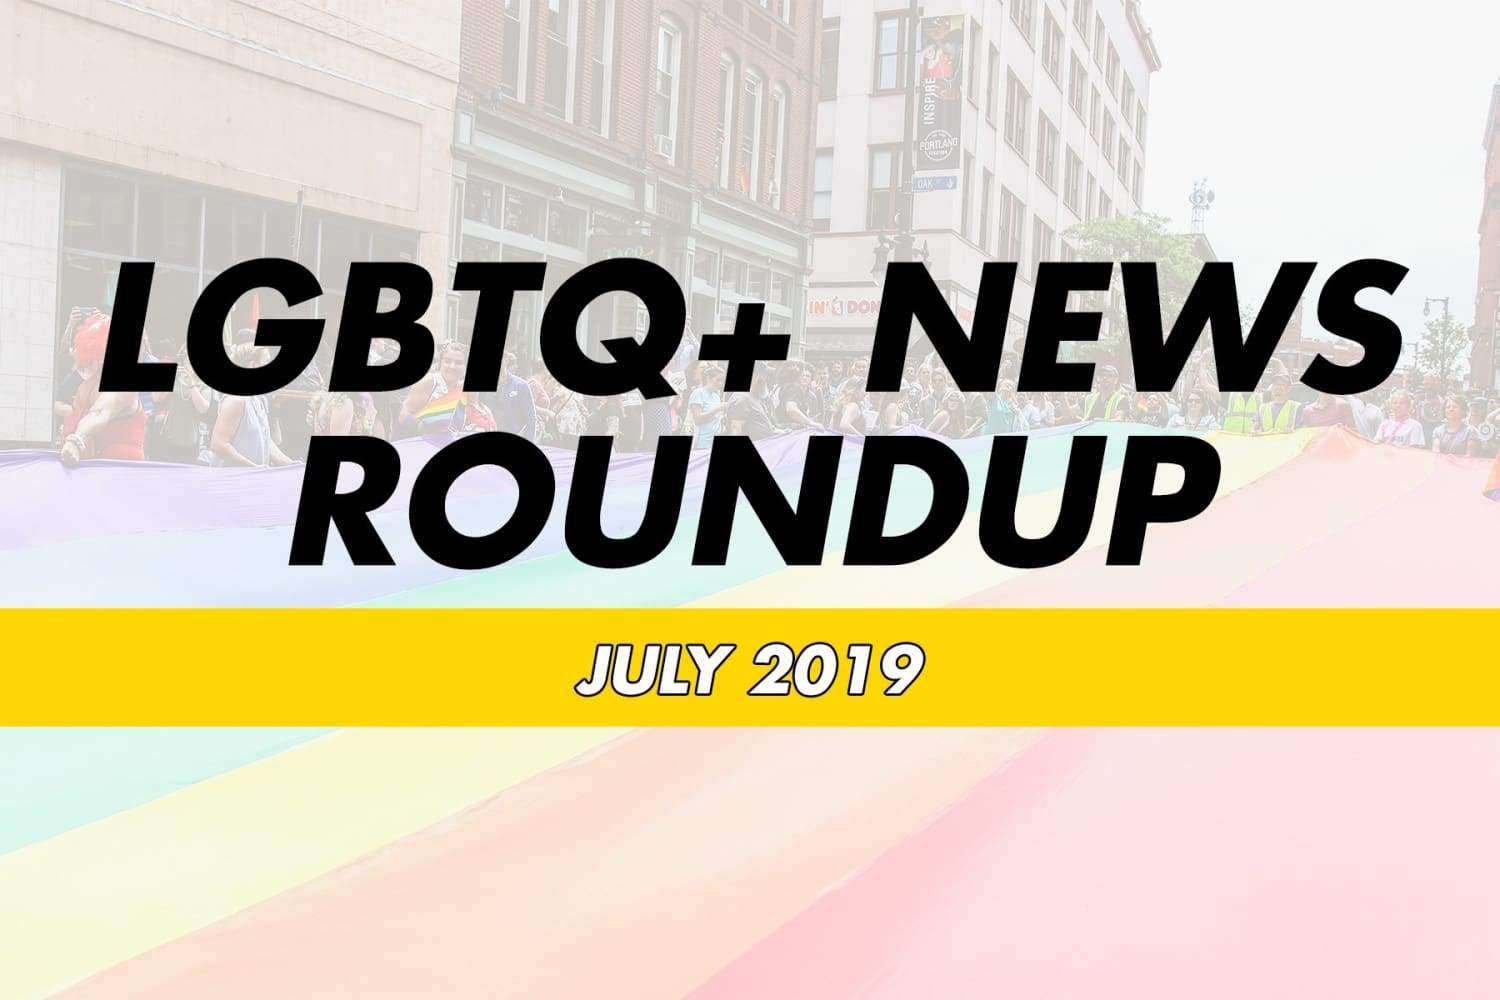 LGBTQ+ News July 2019